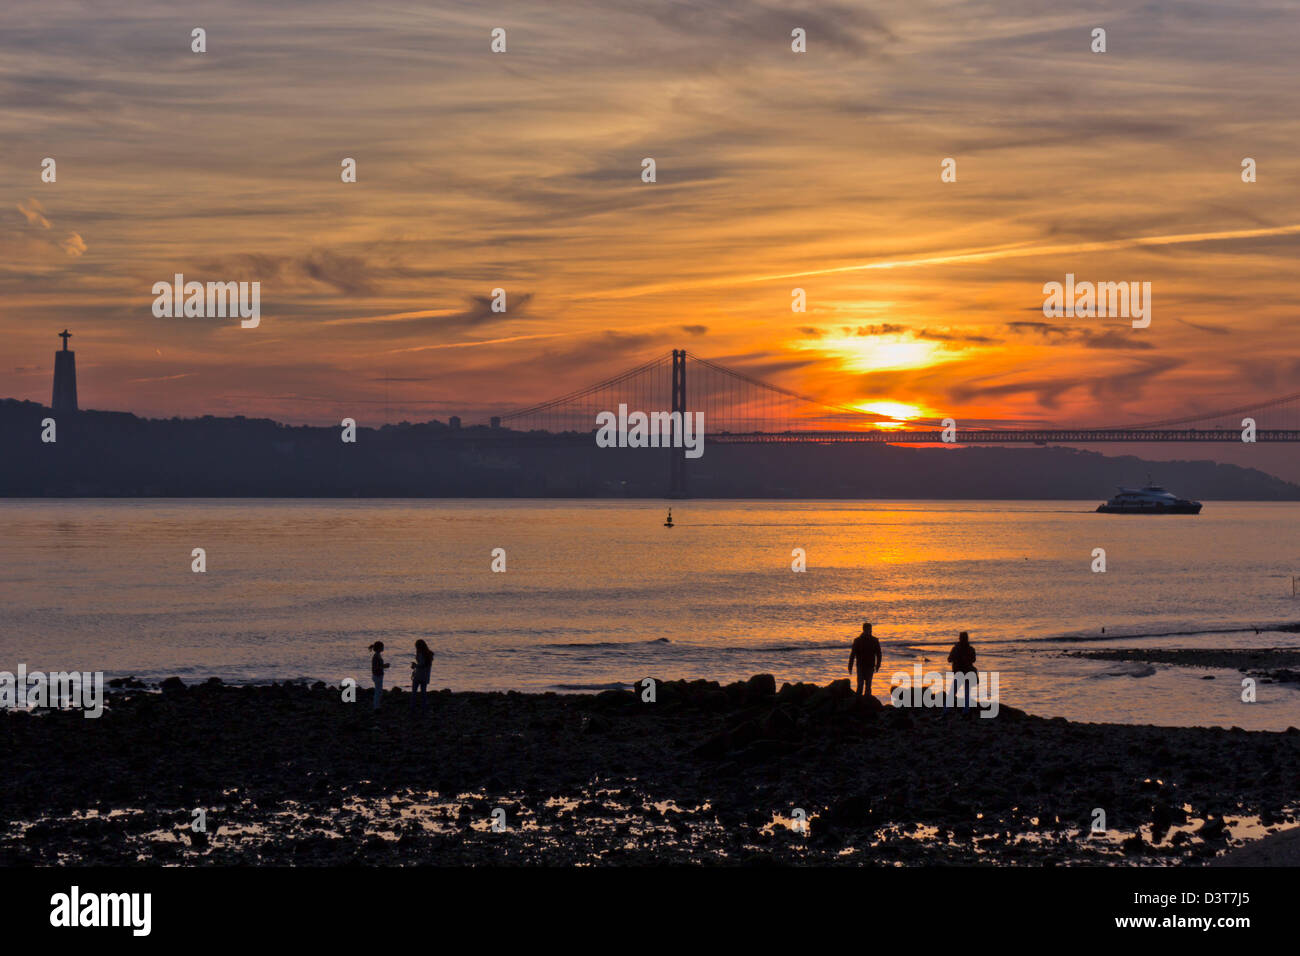 Lisbon, Portugal. View over the Tagus River towards the 25th of April bridge at sunset. Stock Photo